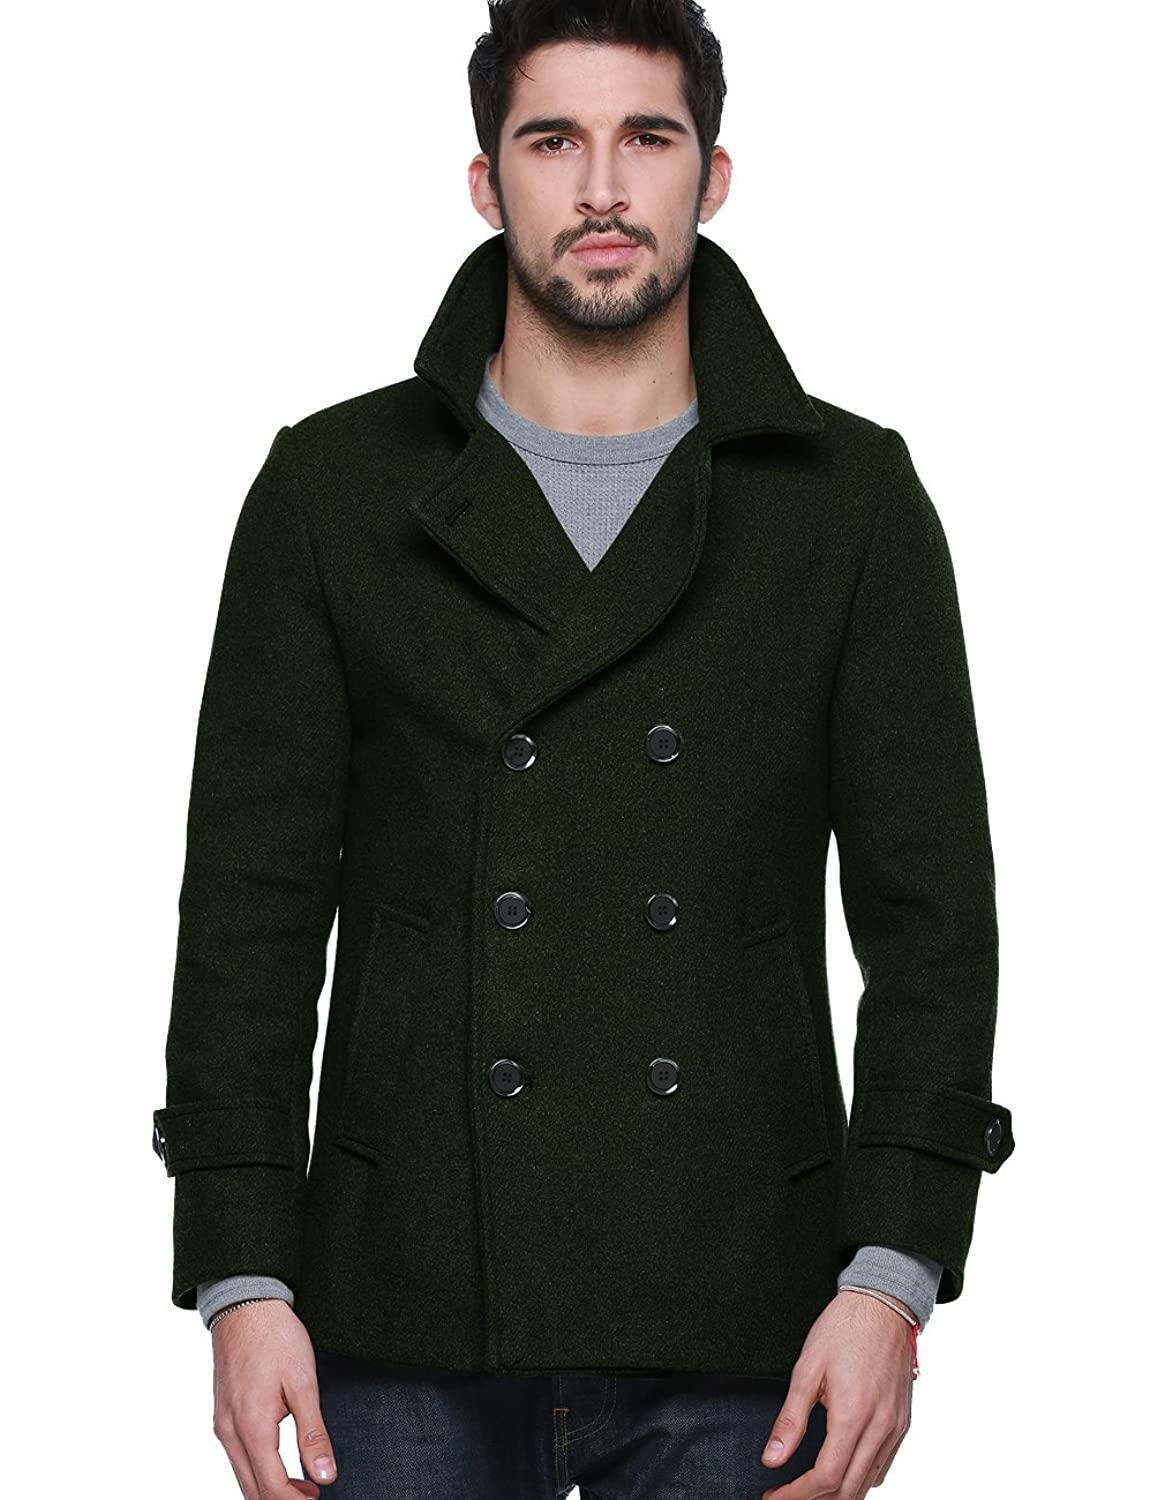 Mens Wool Pea Coat. Get ready, guys! The winter wardrobe staple you need? A wool pea coat. Check out all the latest styles from Polo, Calvin Klein and others.